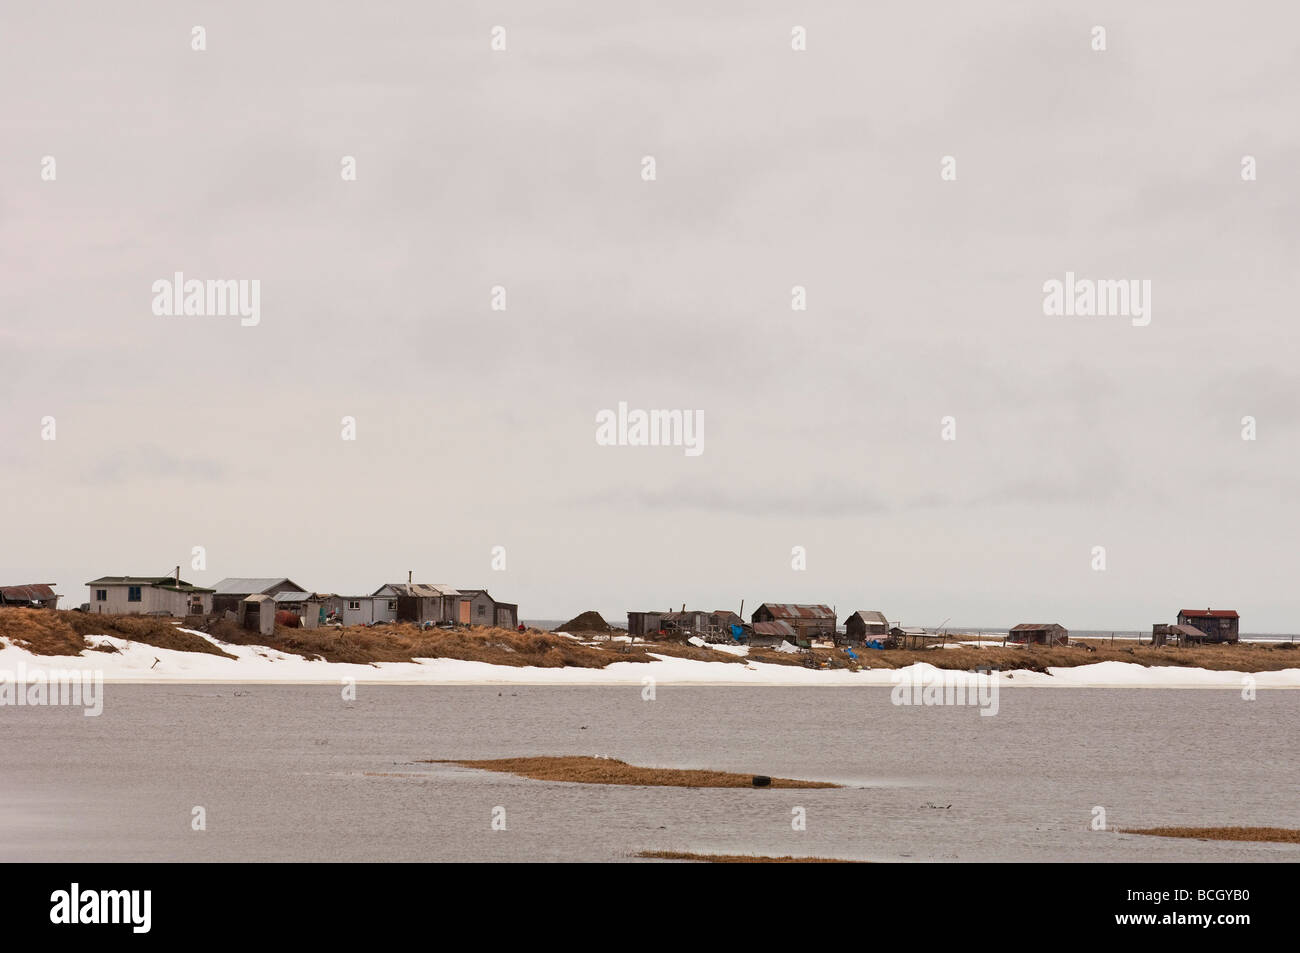 A SUBSISTENCE FISHING CAMP AT THE MOUTH OF THE NOME RIVER ON THE BERING SEA - Stock Image